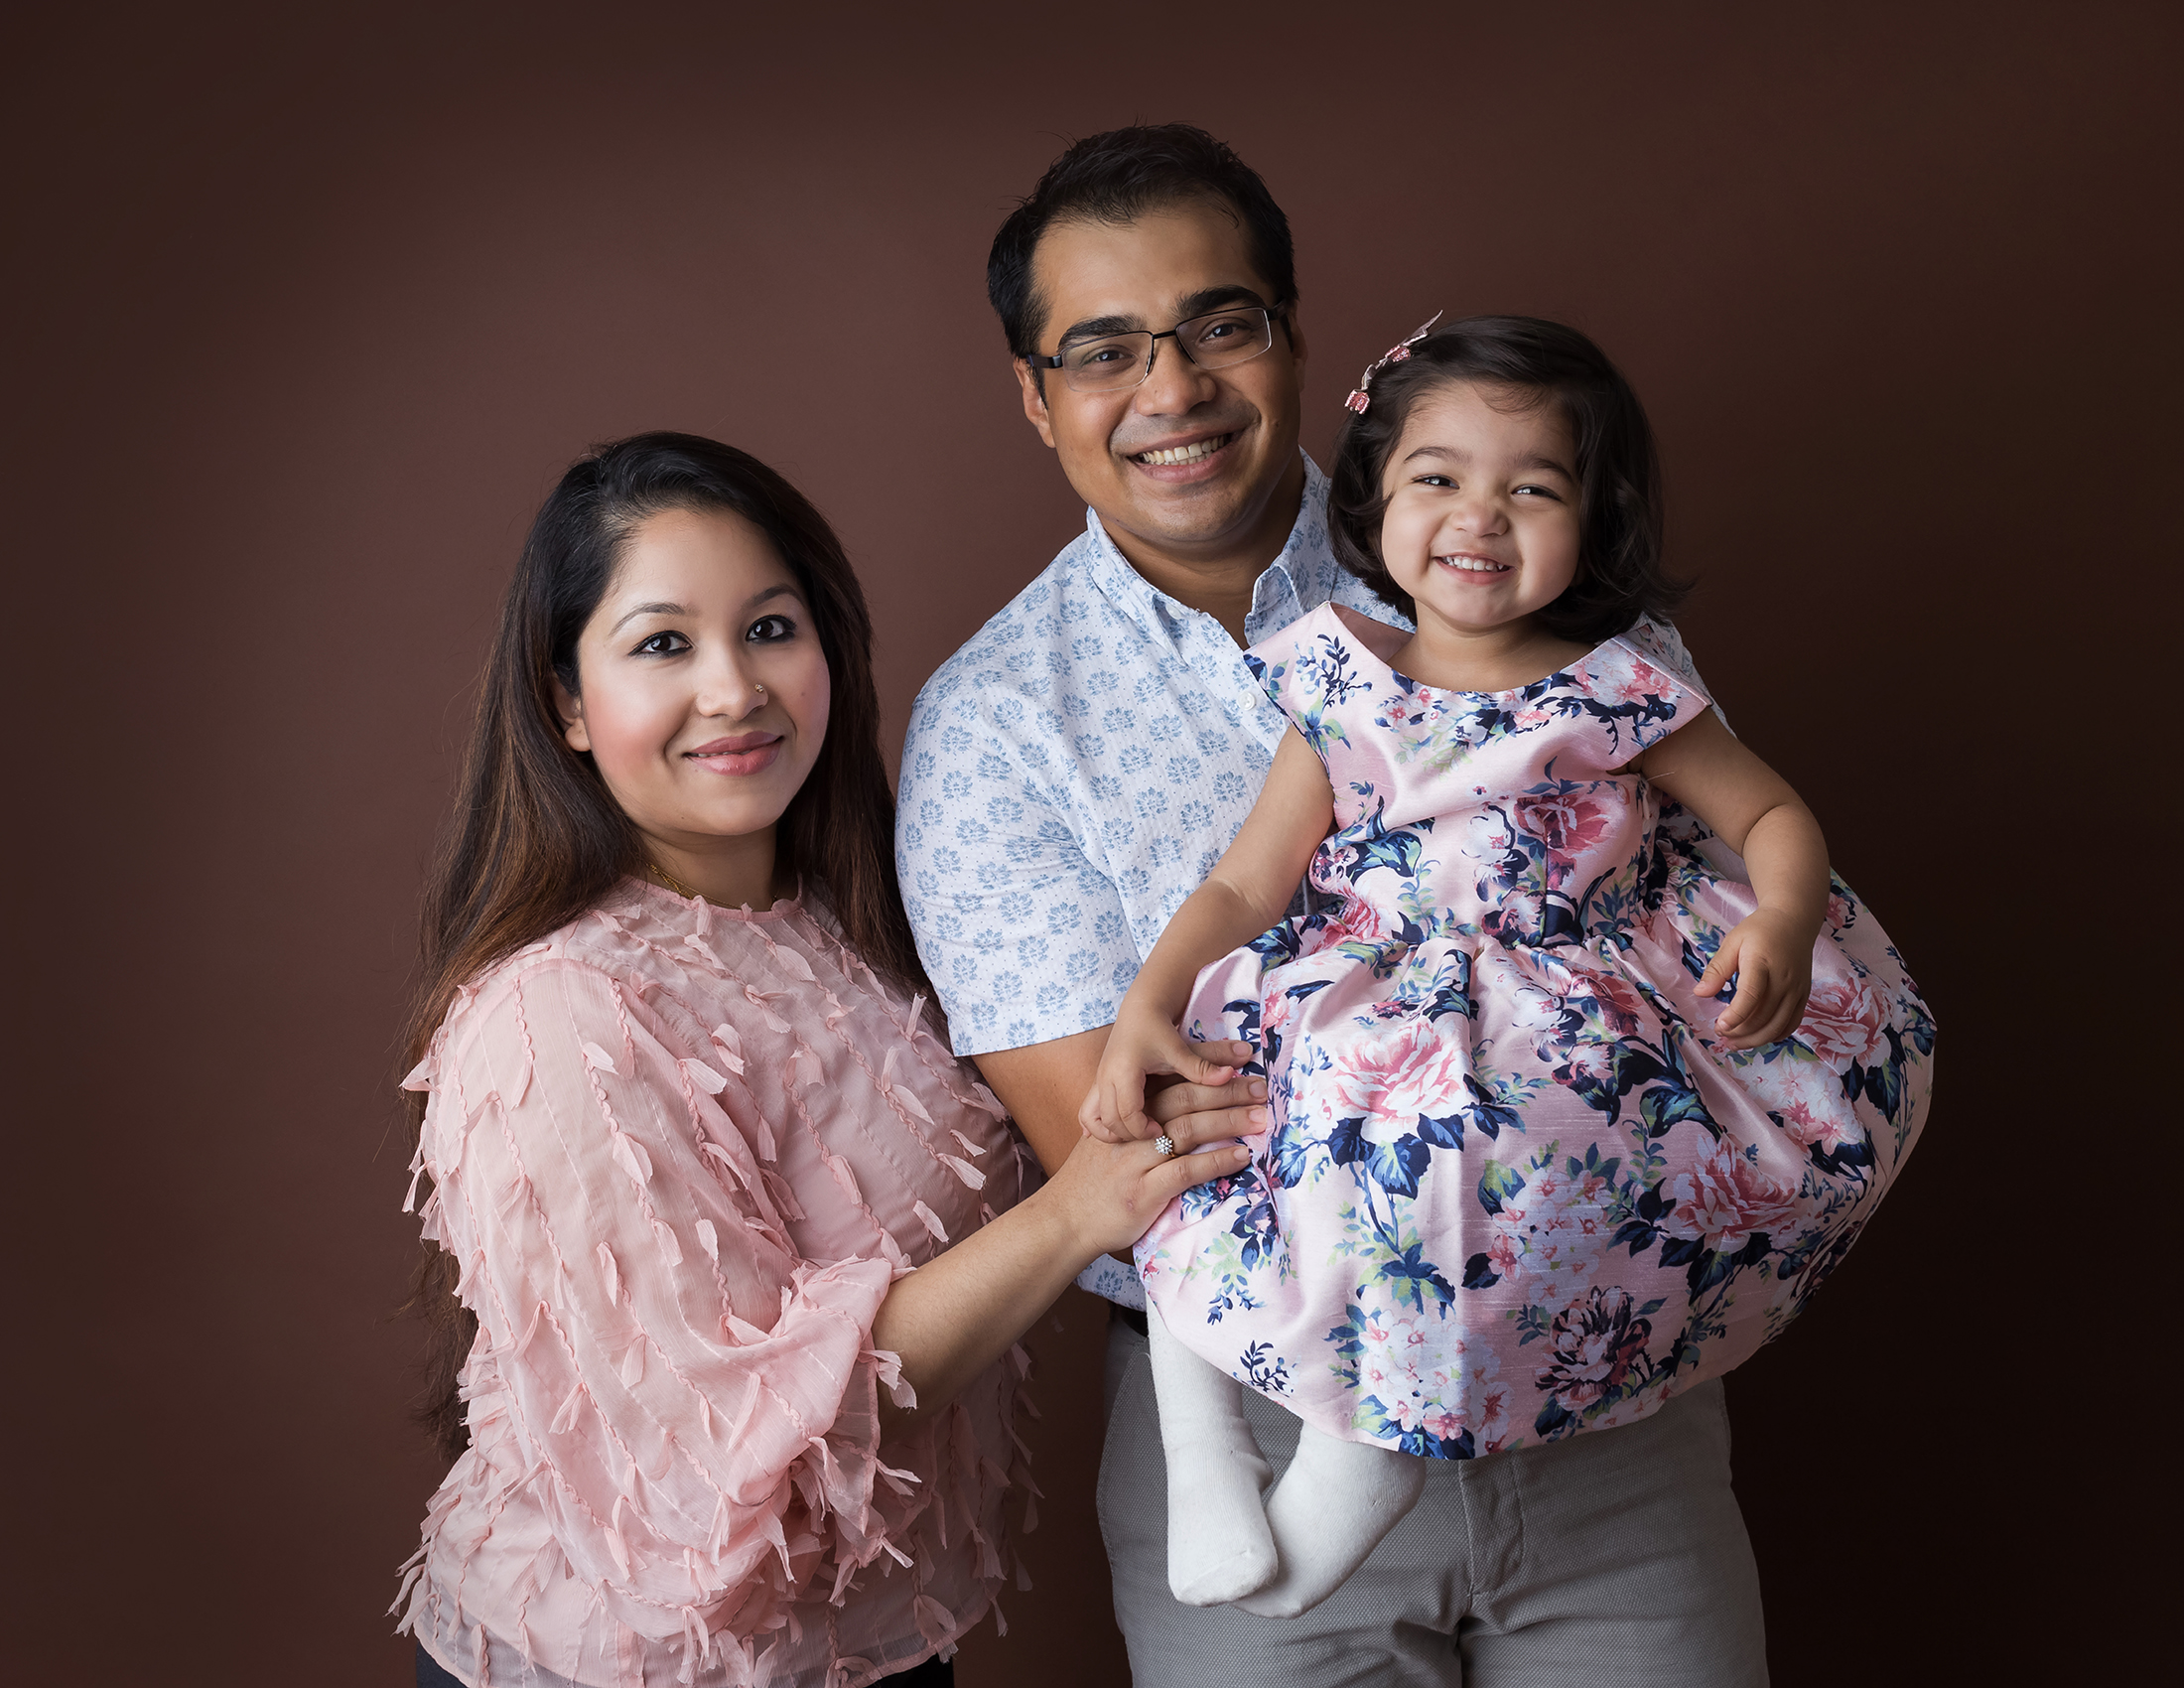 sweet family photography